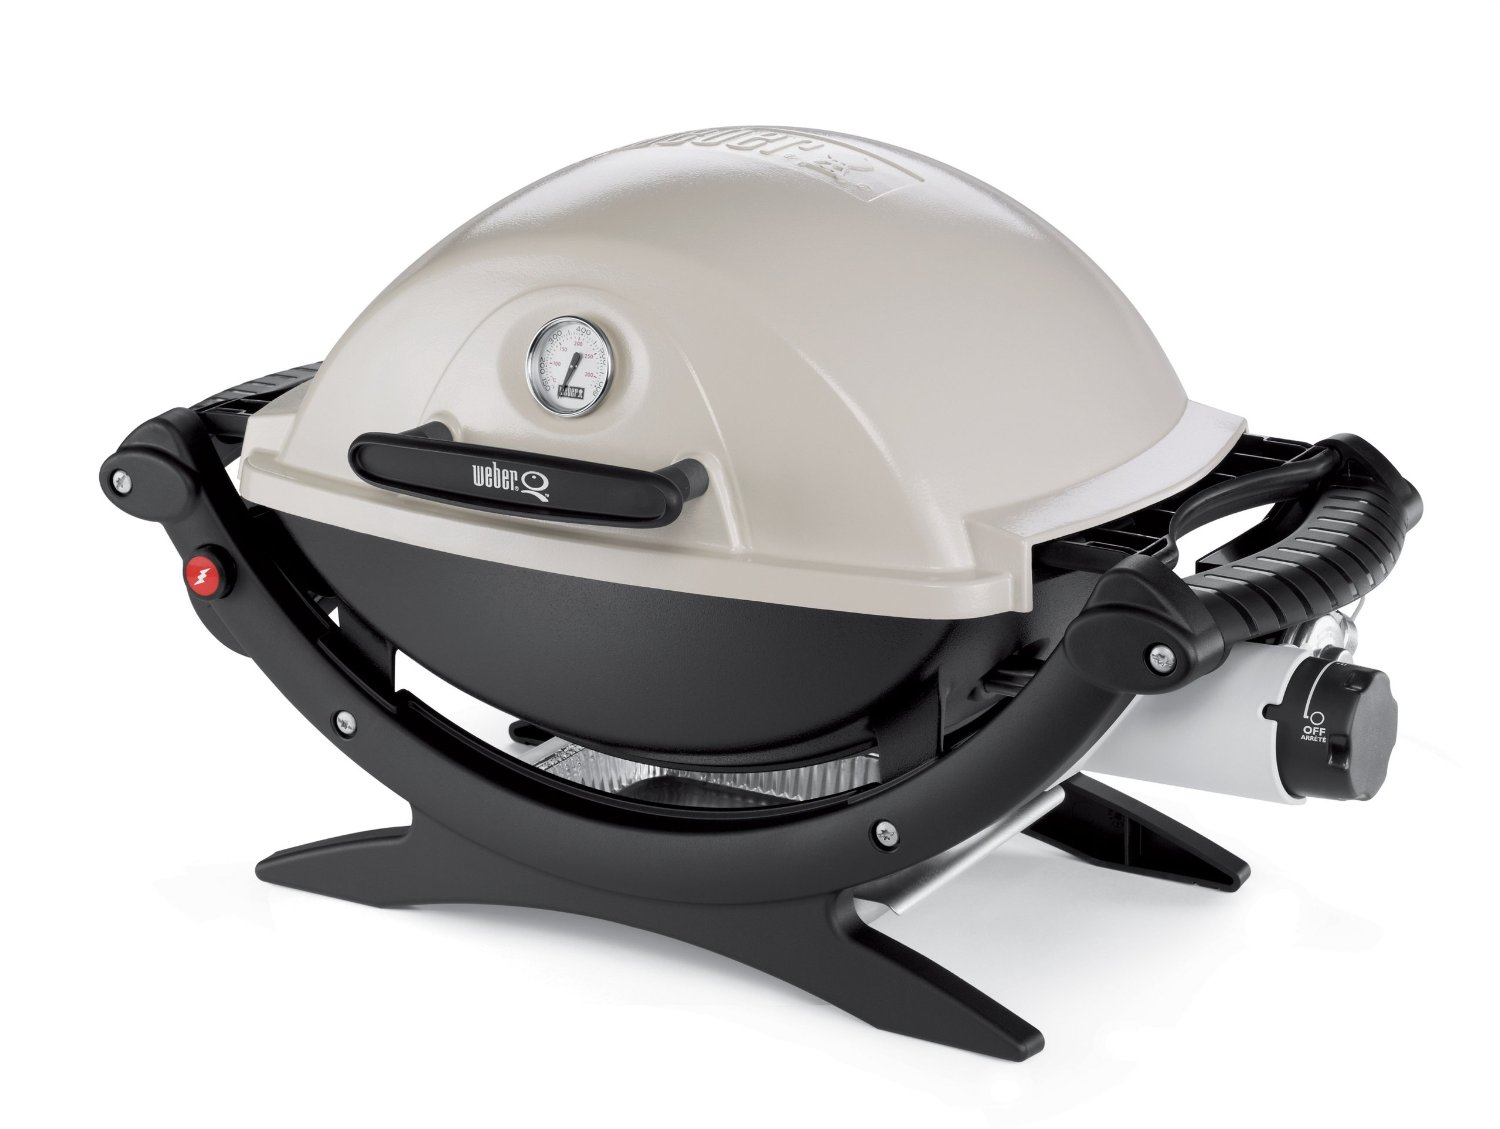 weber q120 the portable gas grill that almost everyone loves grills talk. Black Bedroom Furniture Sets. Home Design Ideas